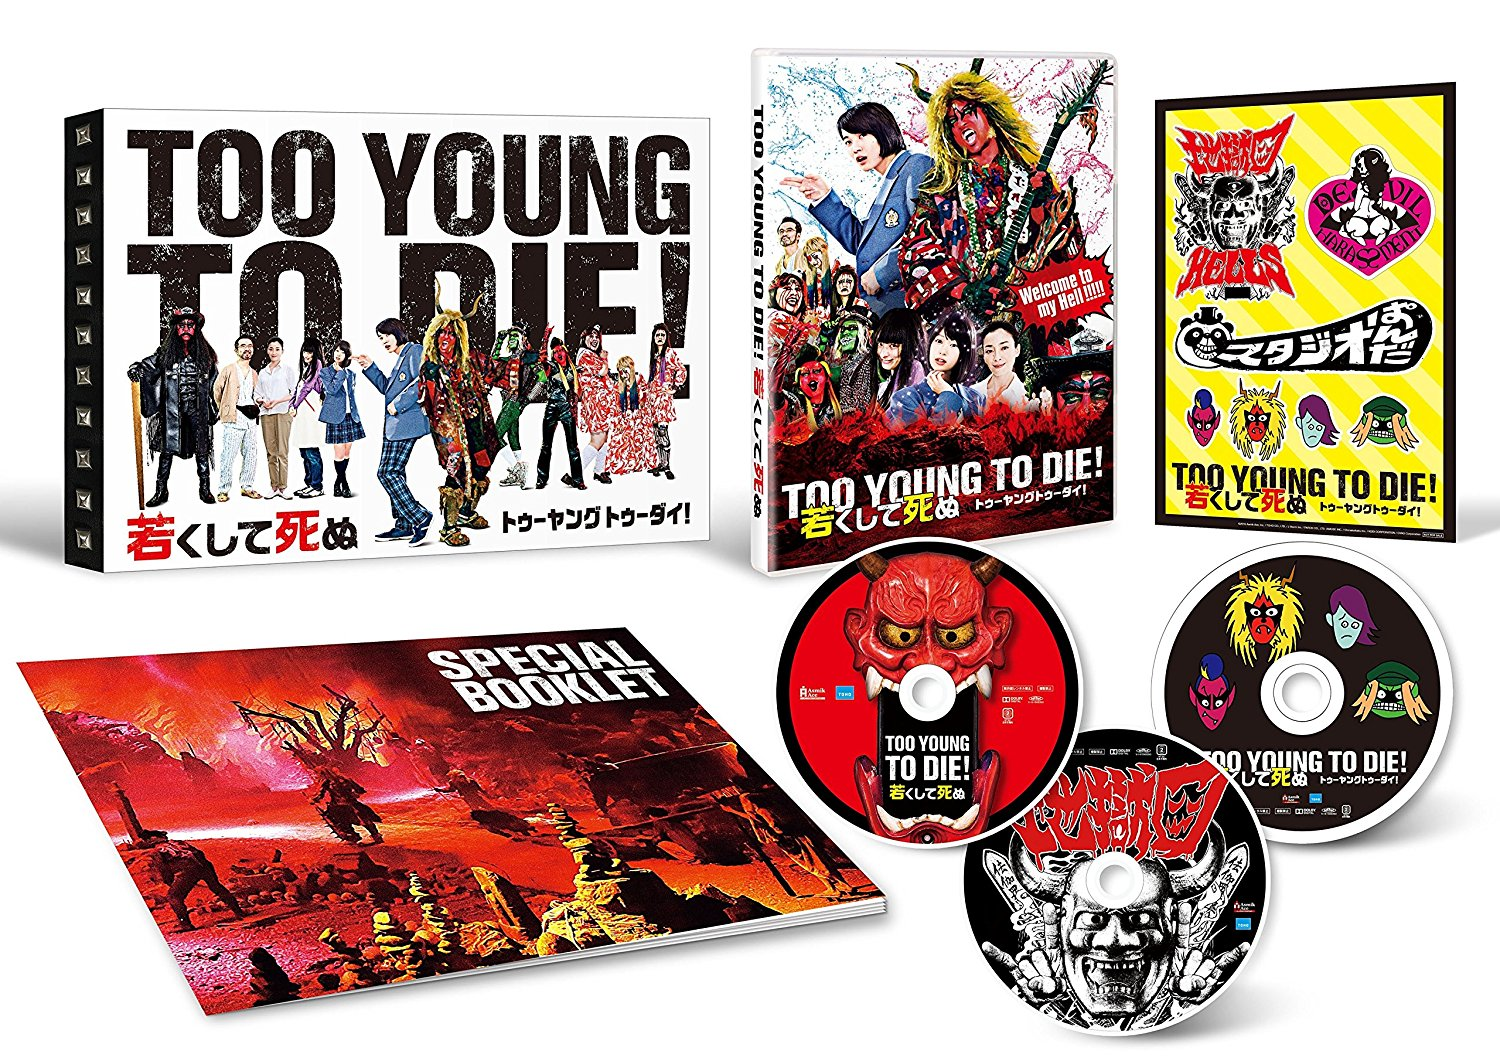 『TOO YOUNG TO DIE! 若くして死ぬ』Blu-ray&DVD